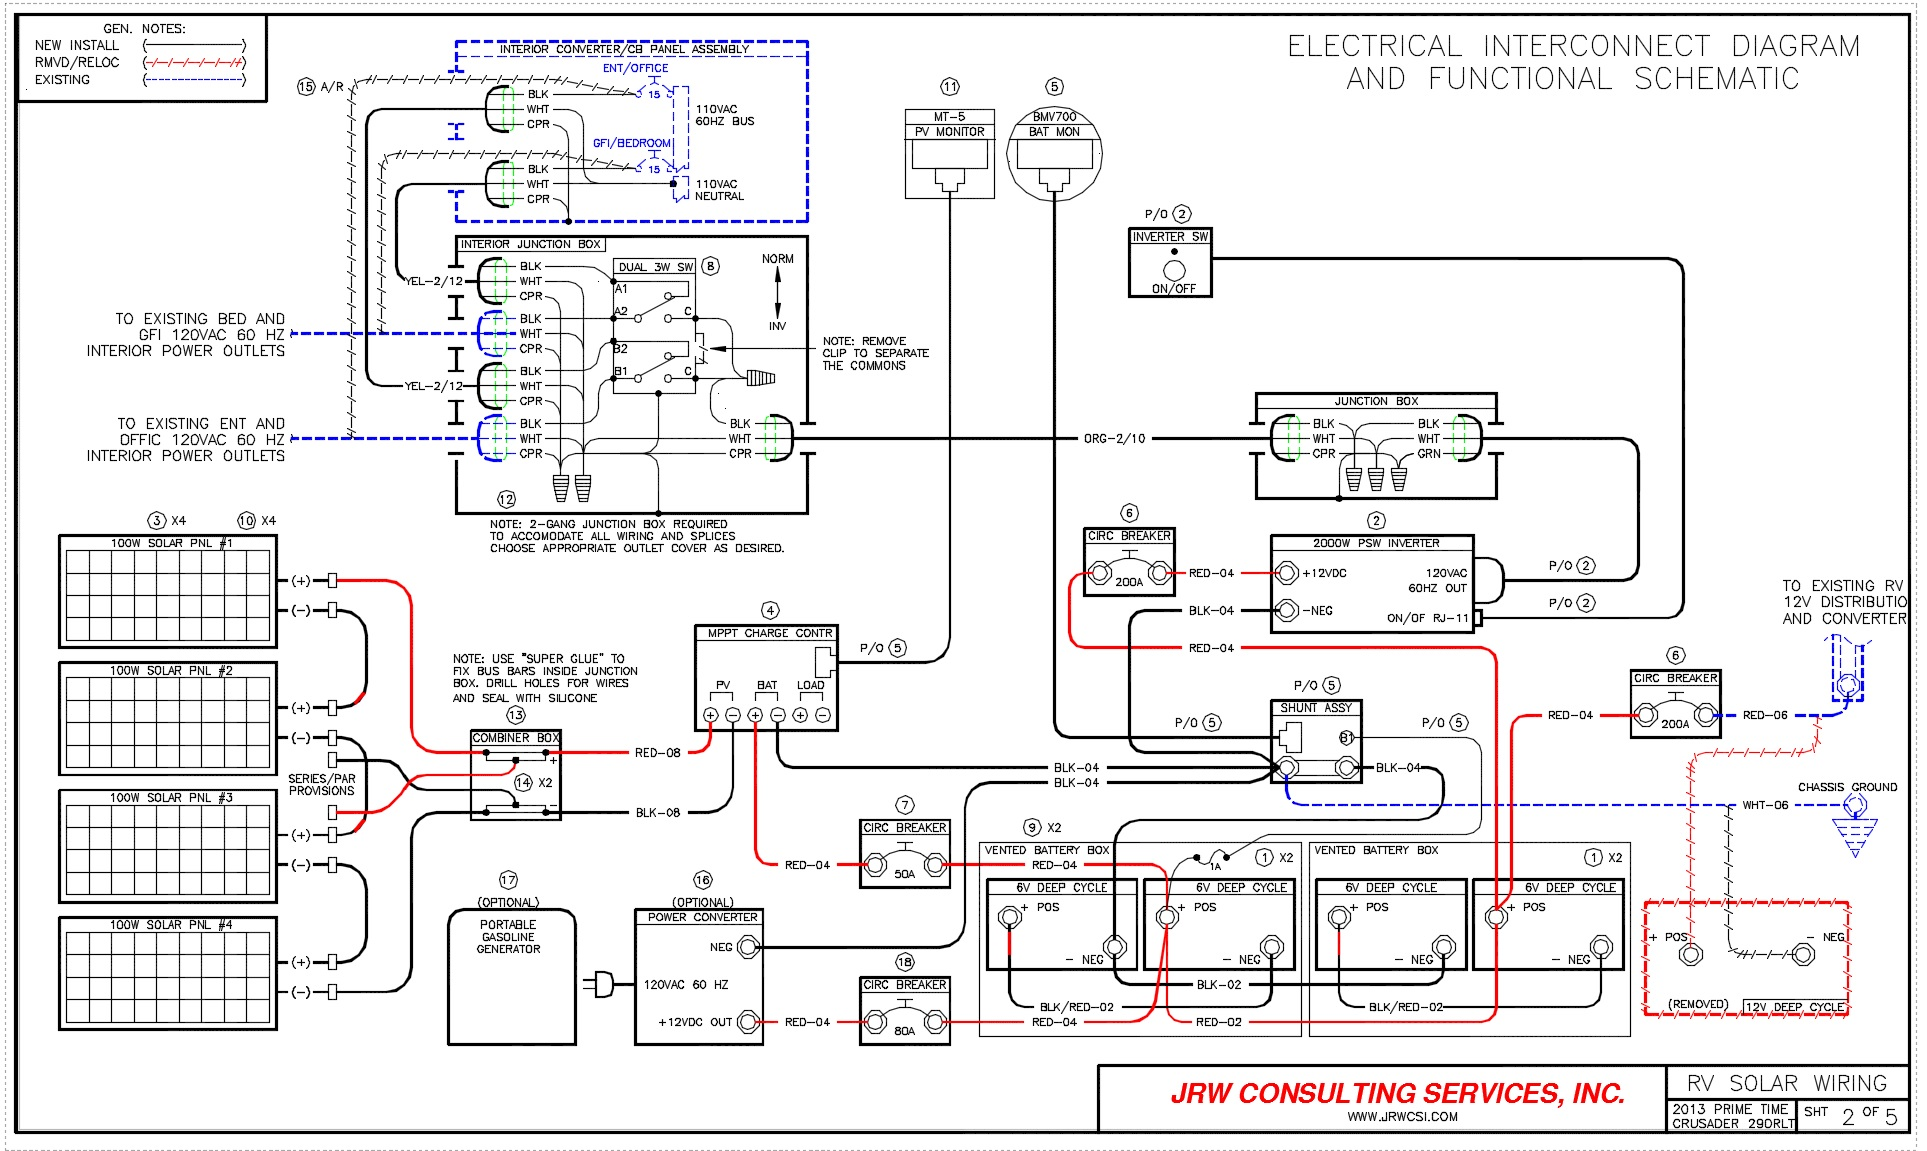 rv electrical wiring diagram detailed schematics diagram rh keyplusrubber com Power Wiring Diagram Colors rv power awning wiring diagram